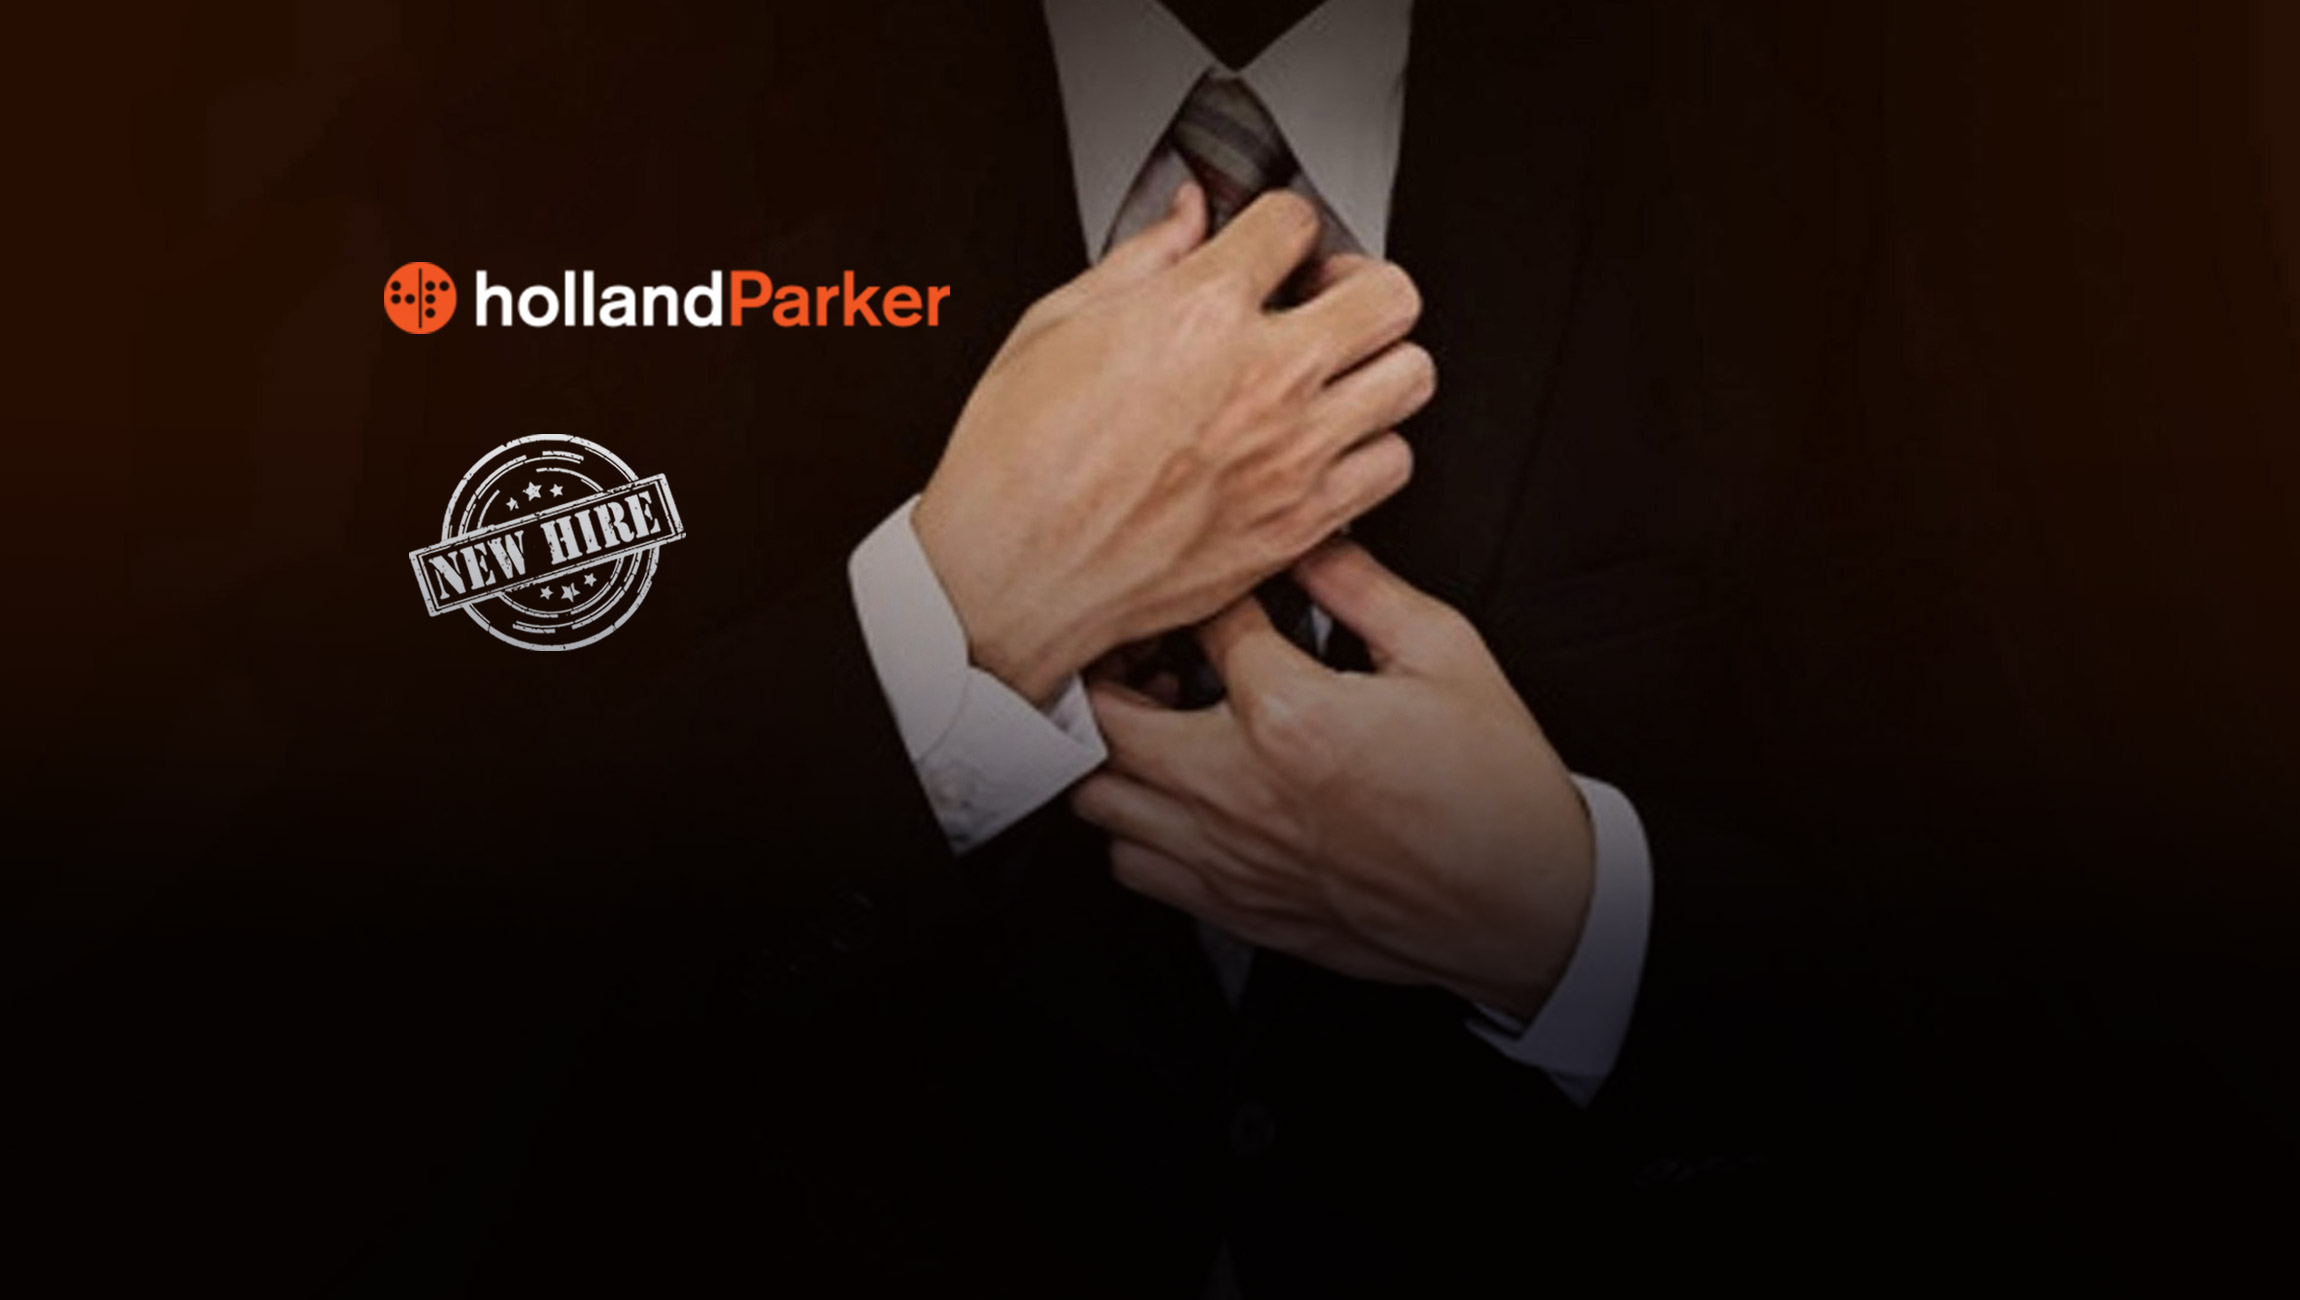 HollandParker Hires CPM Leader Arthur Forbus as Managing Director & COO